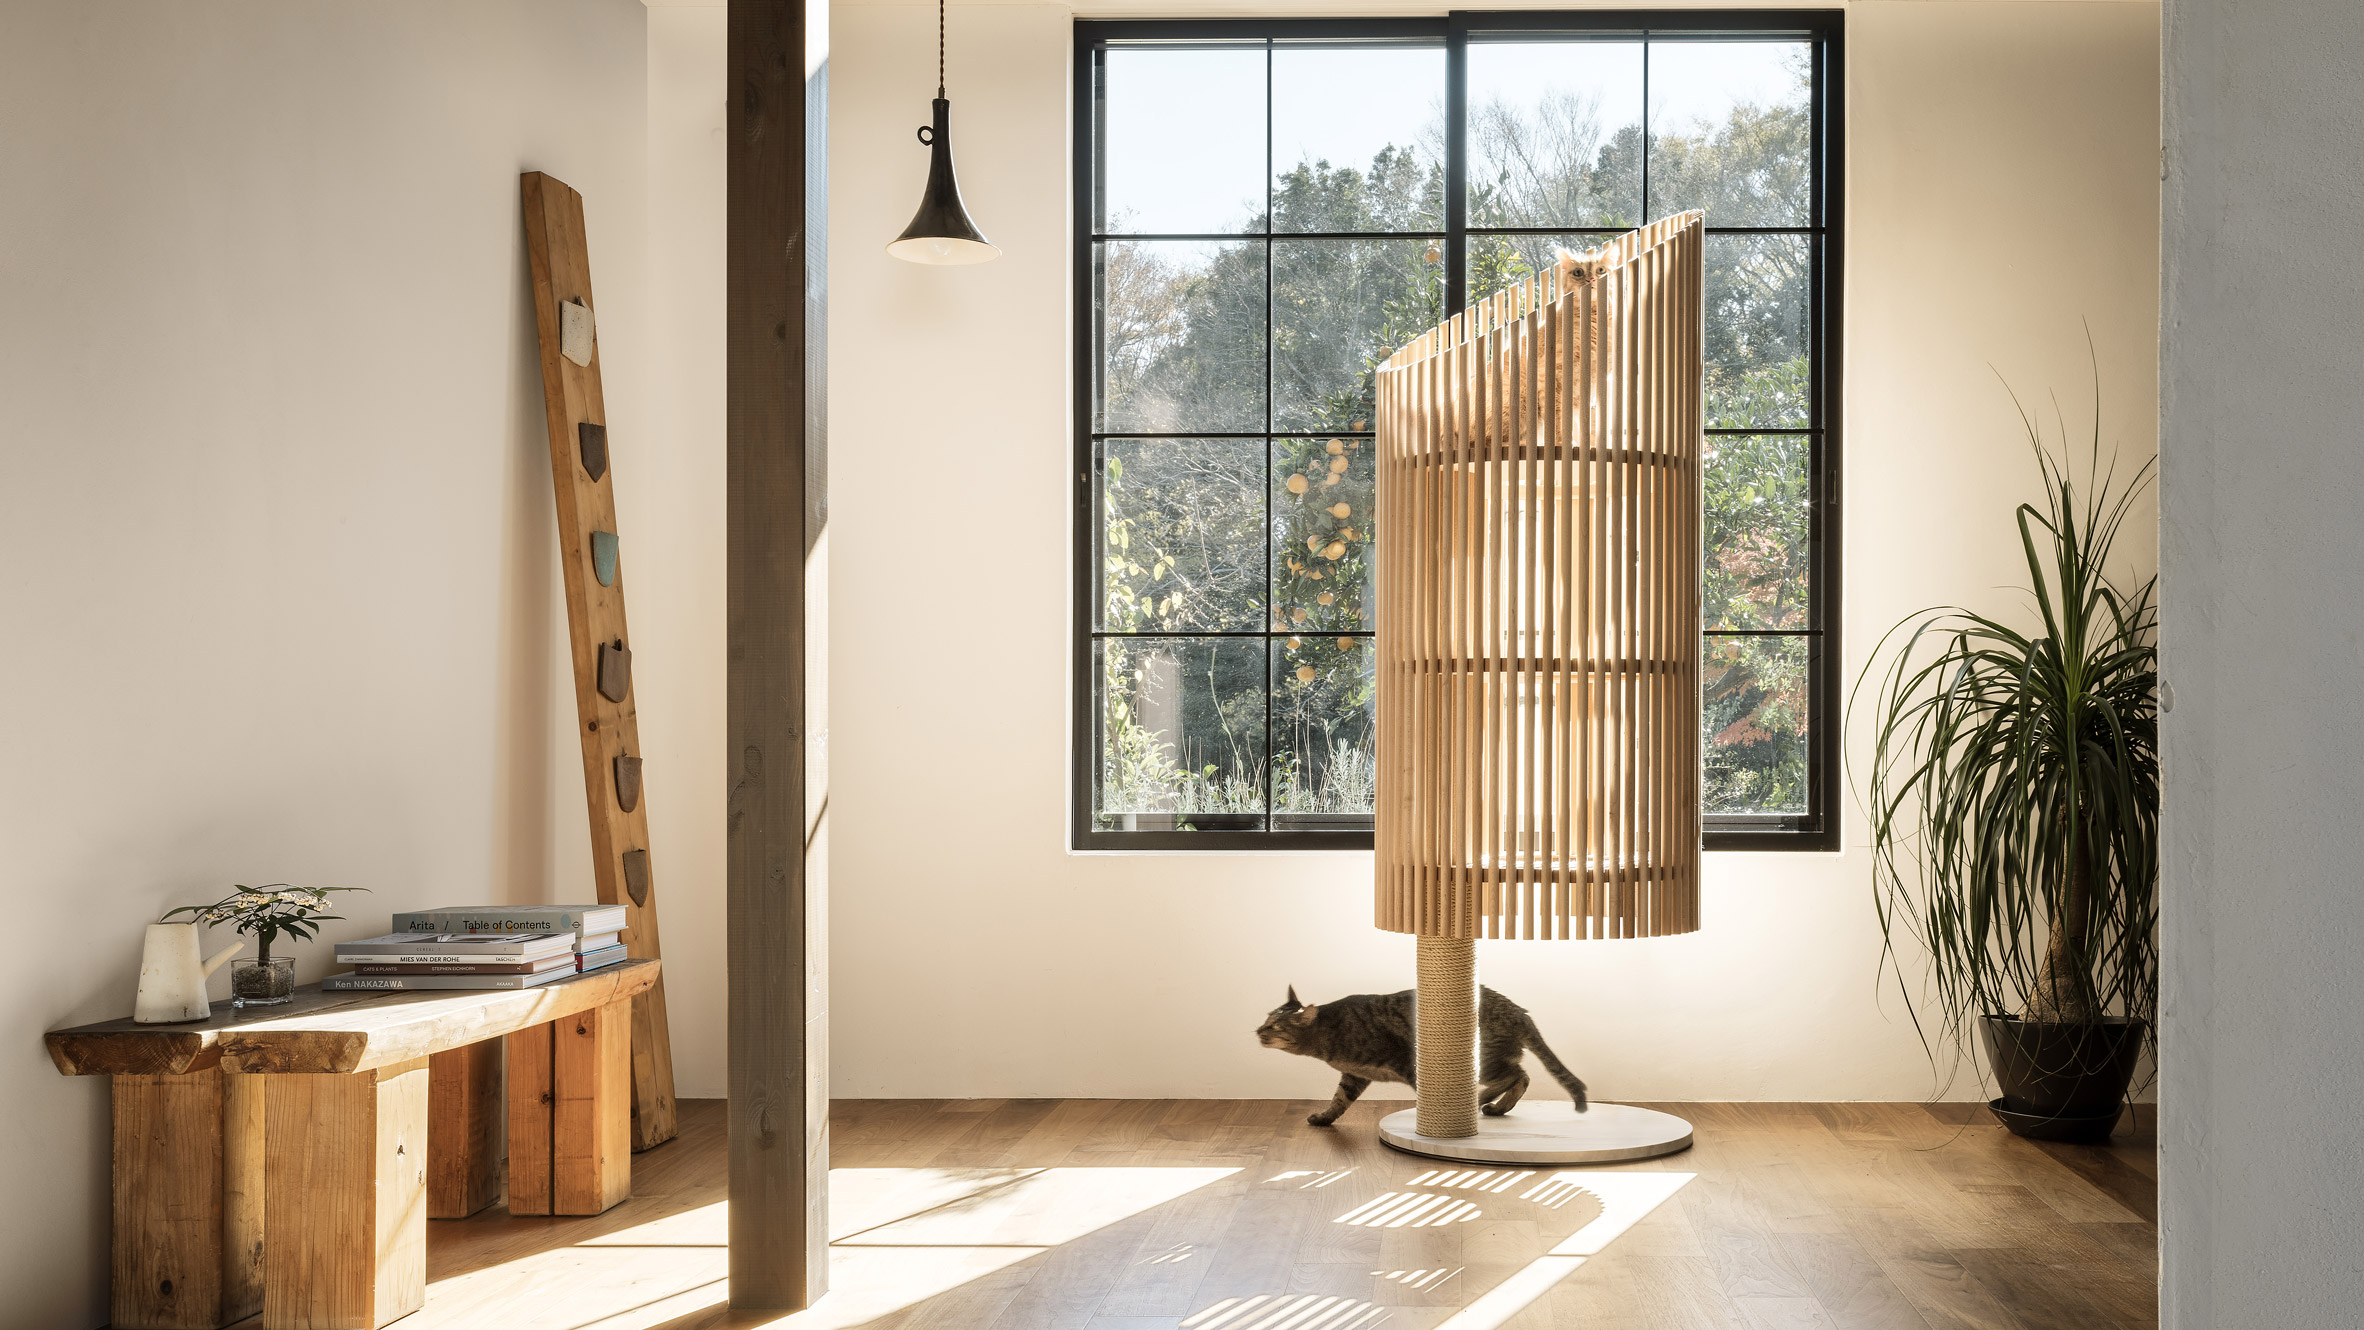 Cat-related design | Dezeen on amazing cat houses, cat play furniture, cat room ideas, cat friendly home ideas, cat friendly rooms, cat play houses, cat play gym, cat trees, cat house design ideas, cat wall, cat houses at target, cool cat houses, cat gym houses, cat house plans, cat condo ideas,